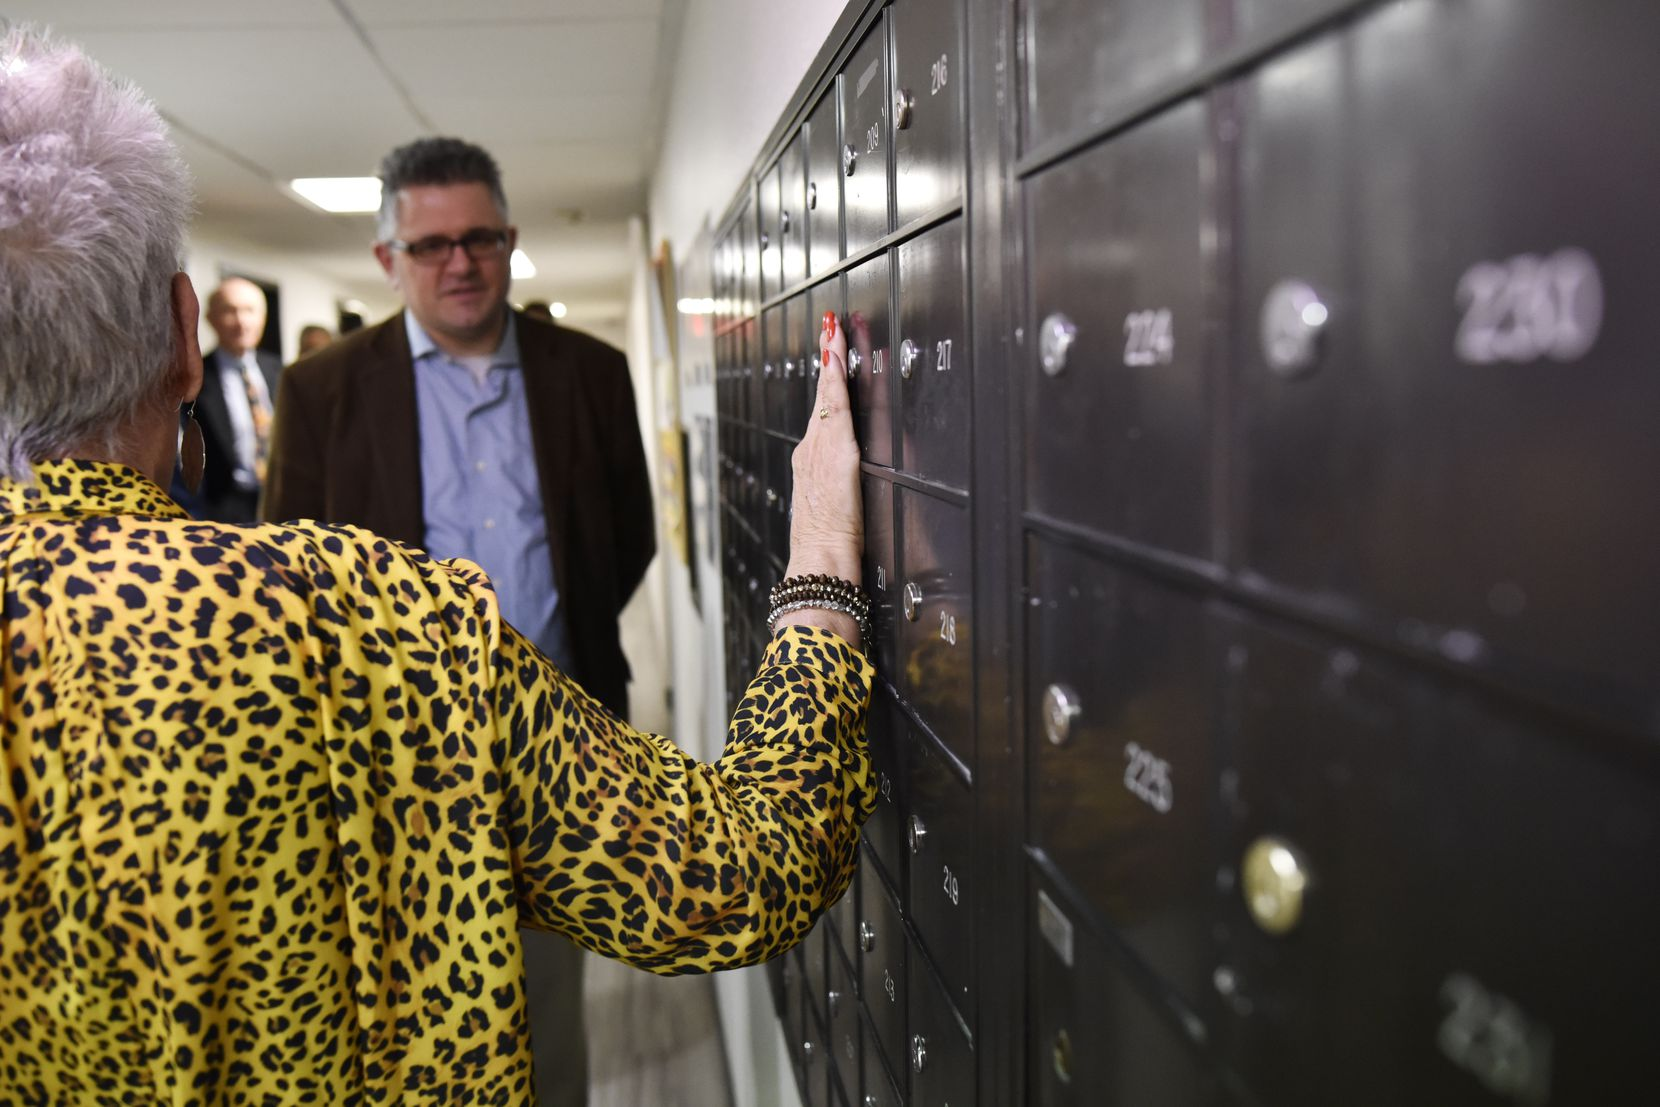 Cindy Montgomery, St. Jude Center's property manager, tells Mark Calabria,  director of the Federal Housing Finance Agency, that the mailboxes here are as important as any activity room or library.